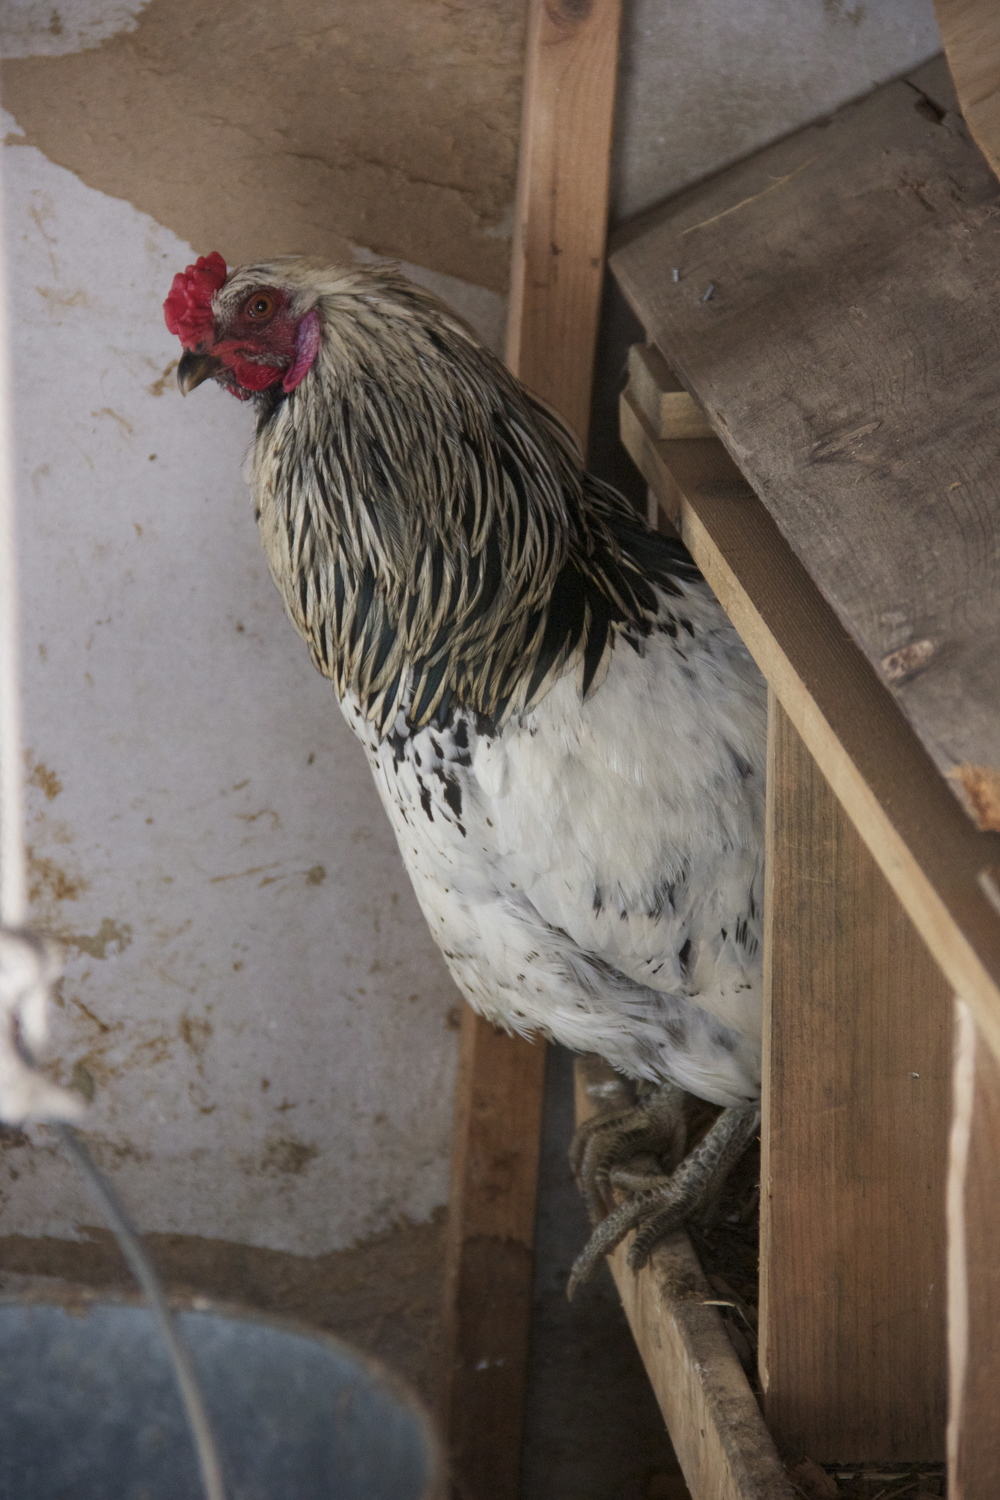 rooster all up in the next box, just trying to stay cozy